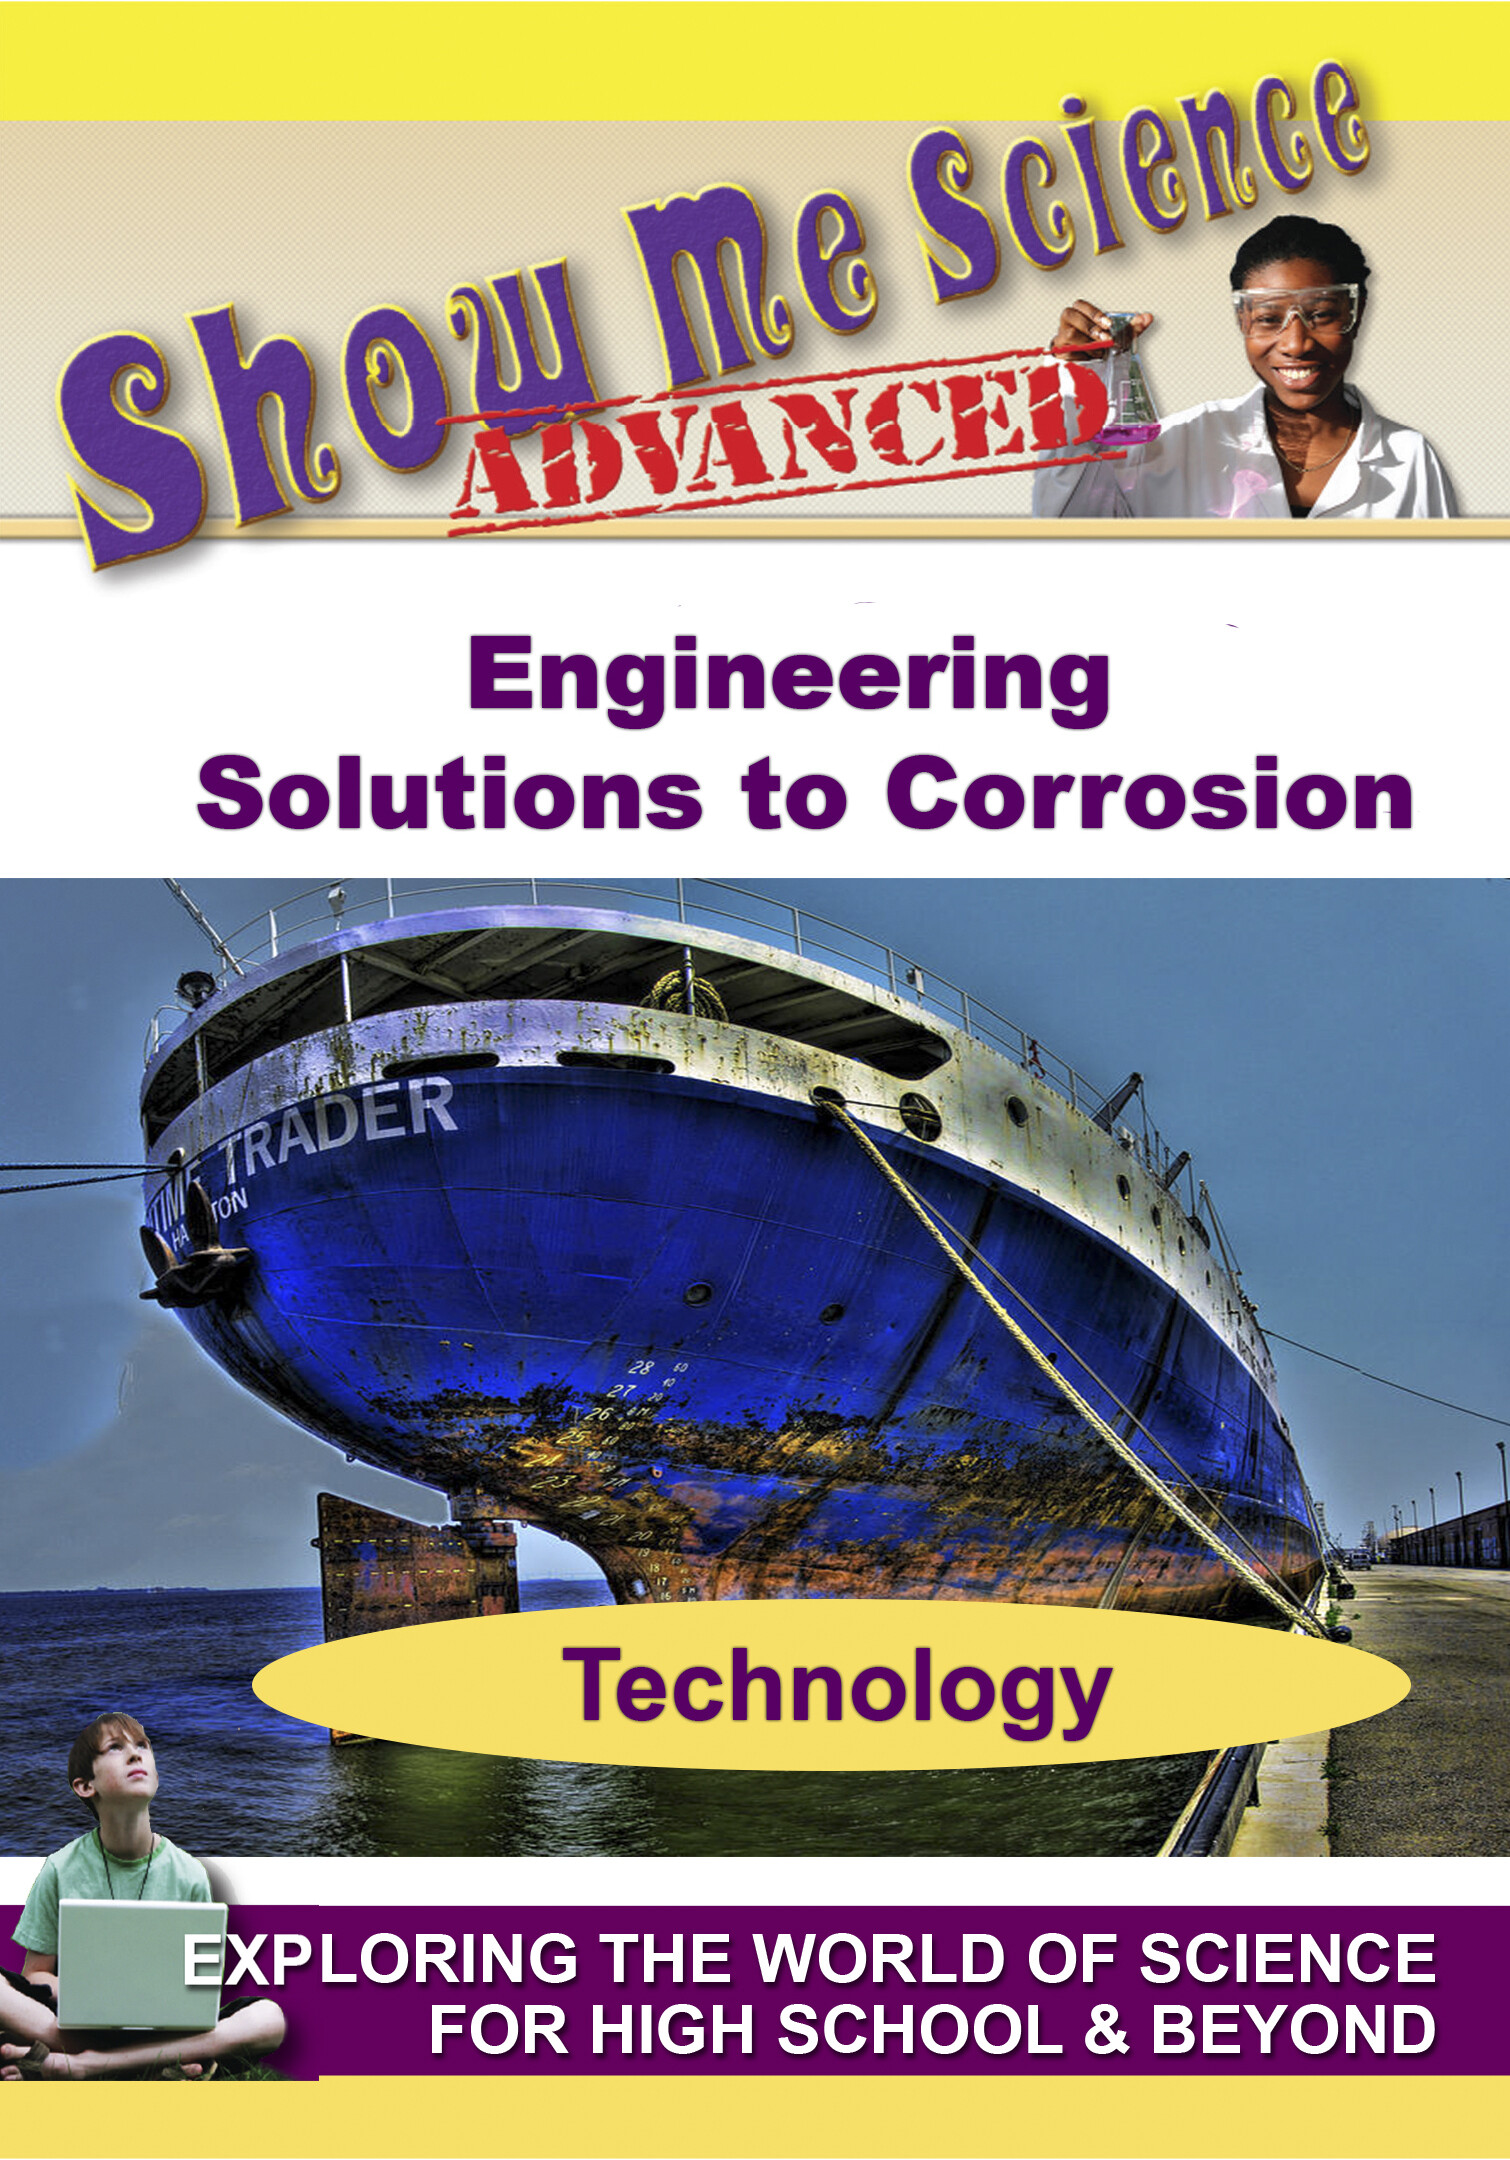 K4684 - Engineering Solutions to Corrosion